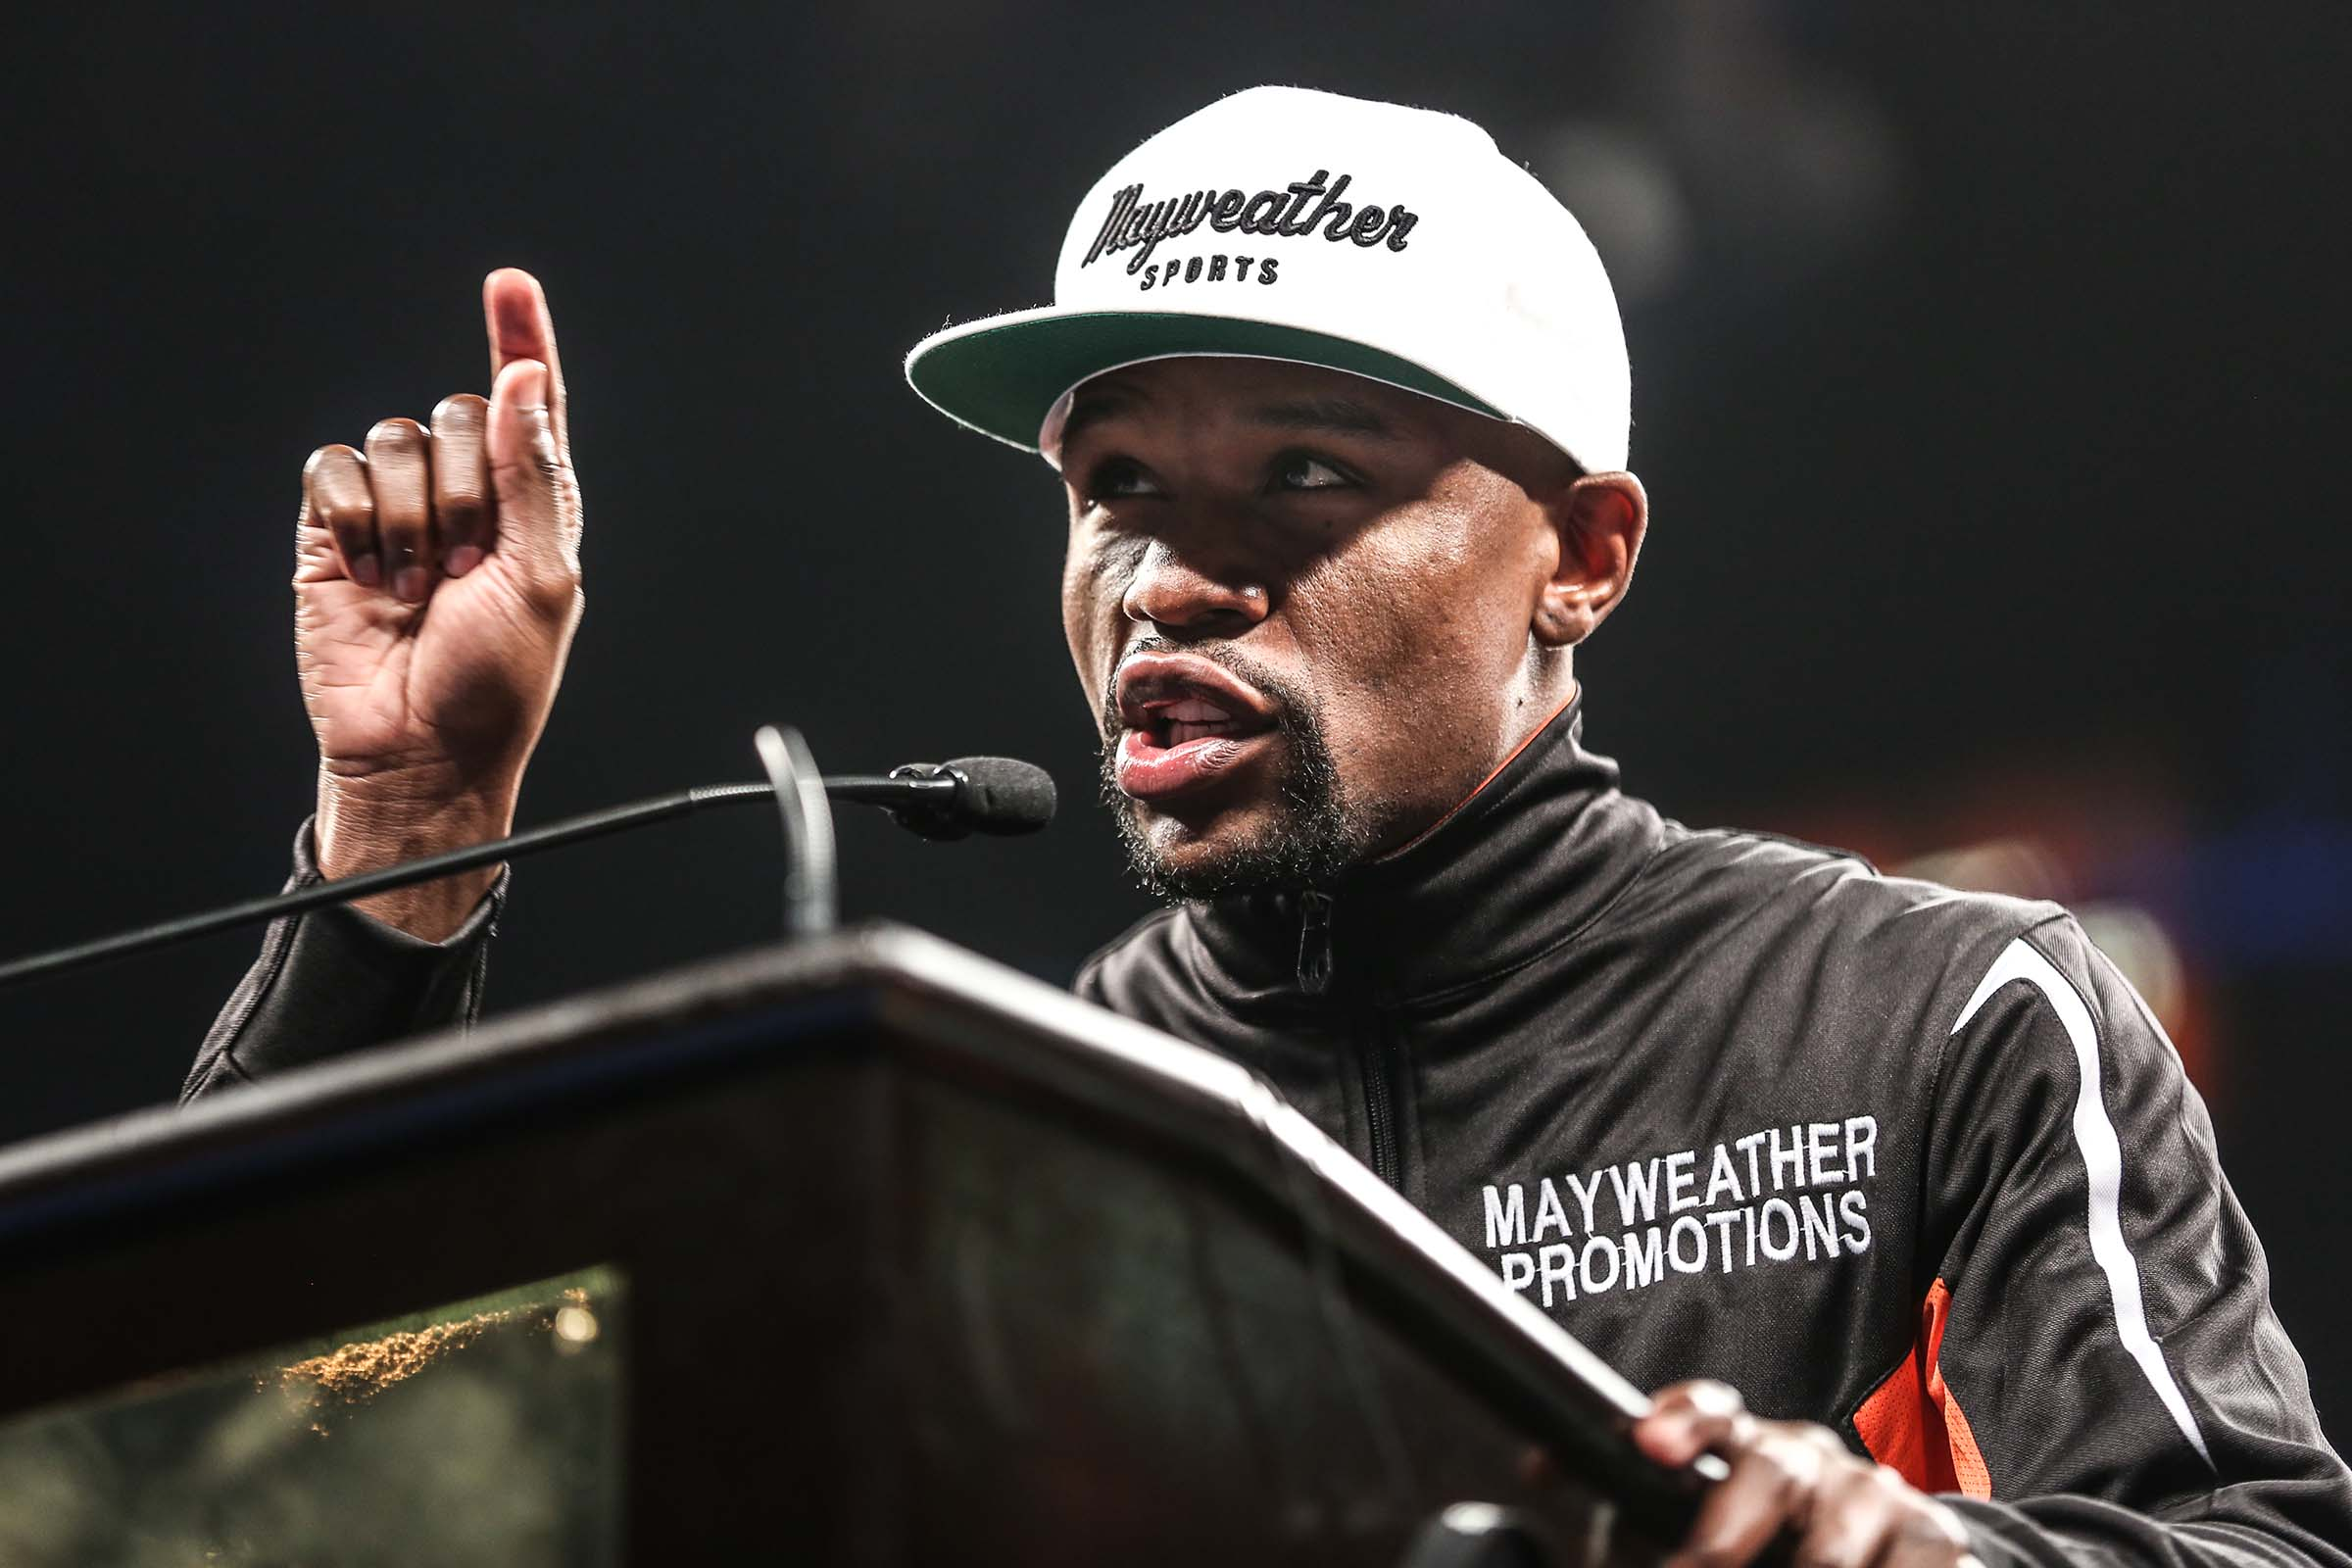 Mayweather Promotions – Past 8dfce81d9ff